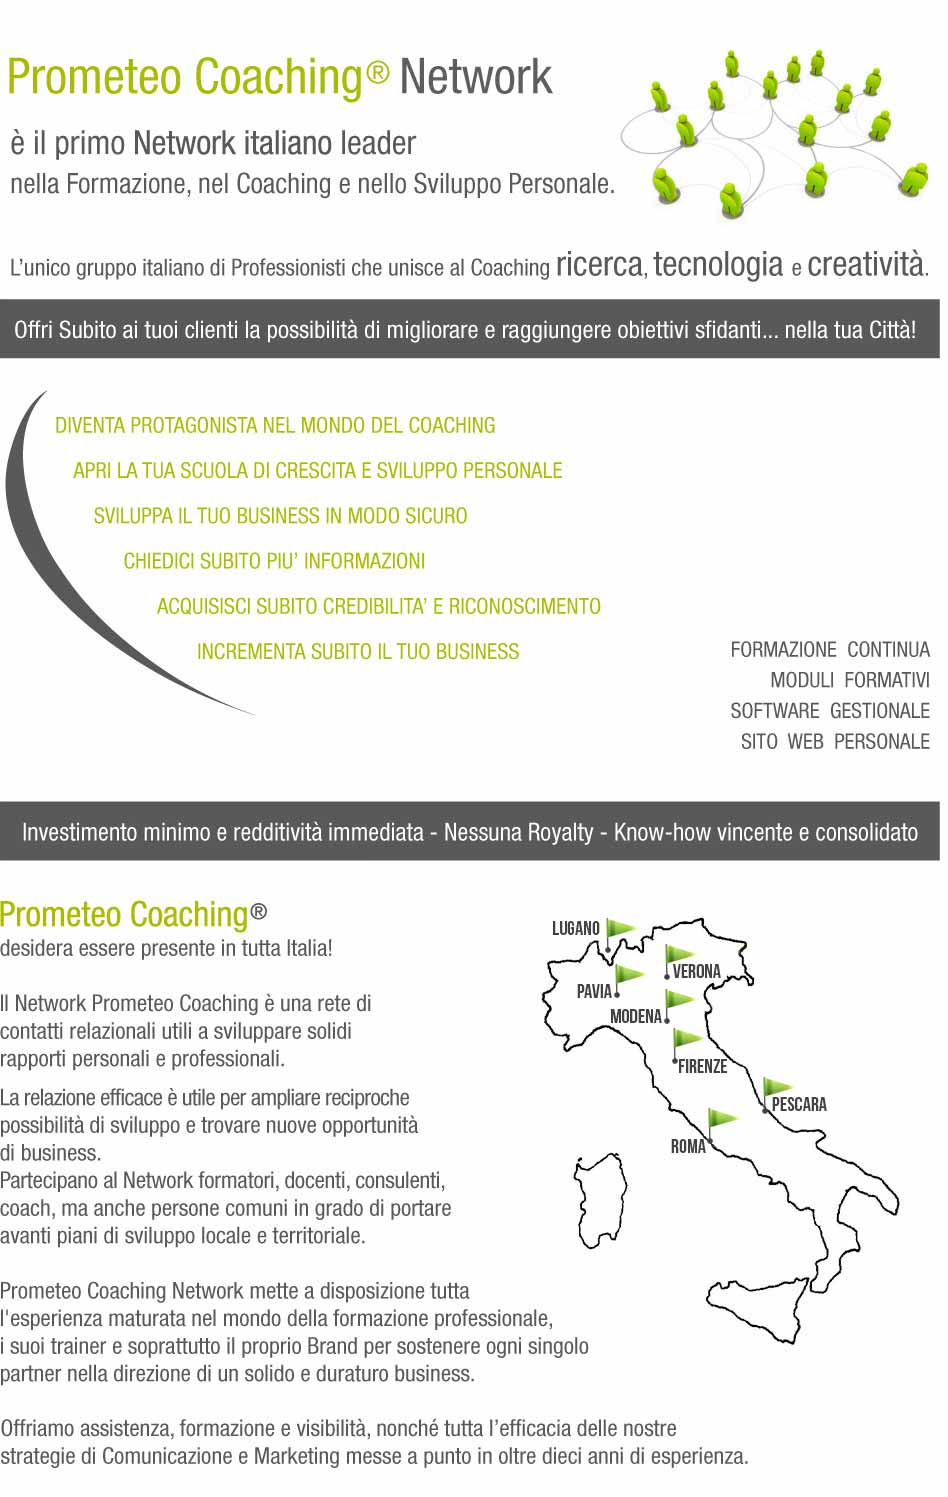 Network Prometeo Coaching